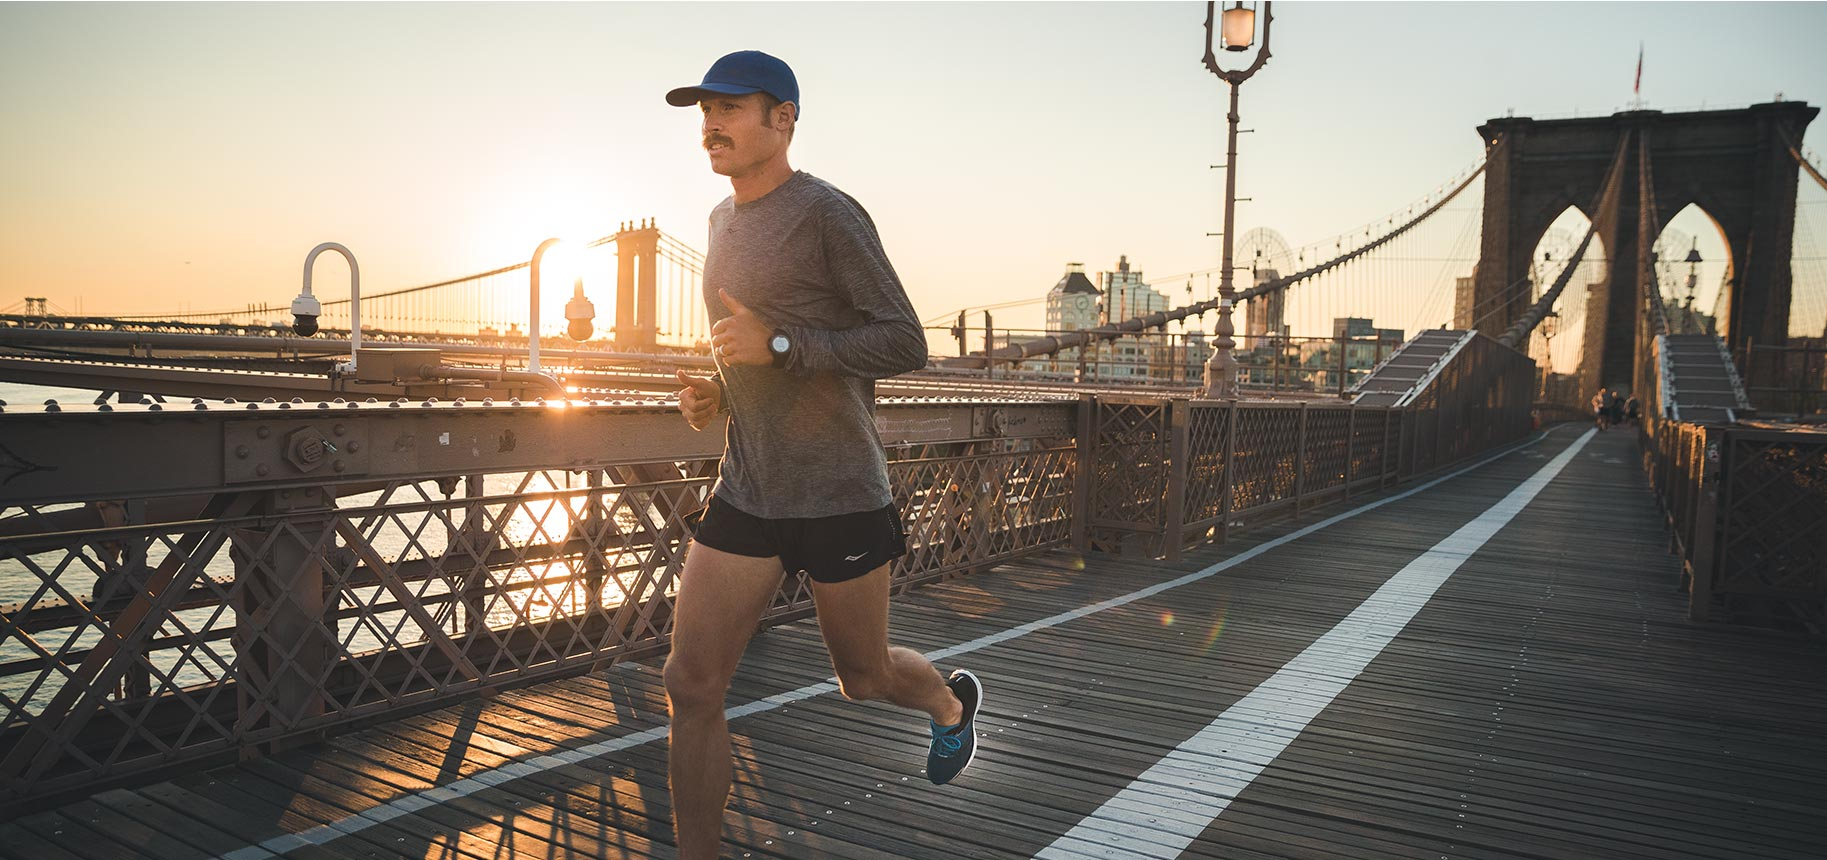 Jared Ward running on a bridge with the city skyline in the background.